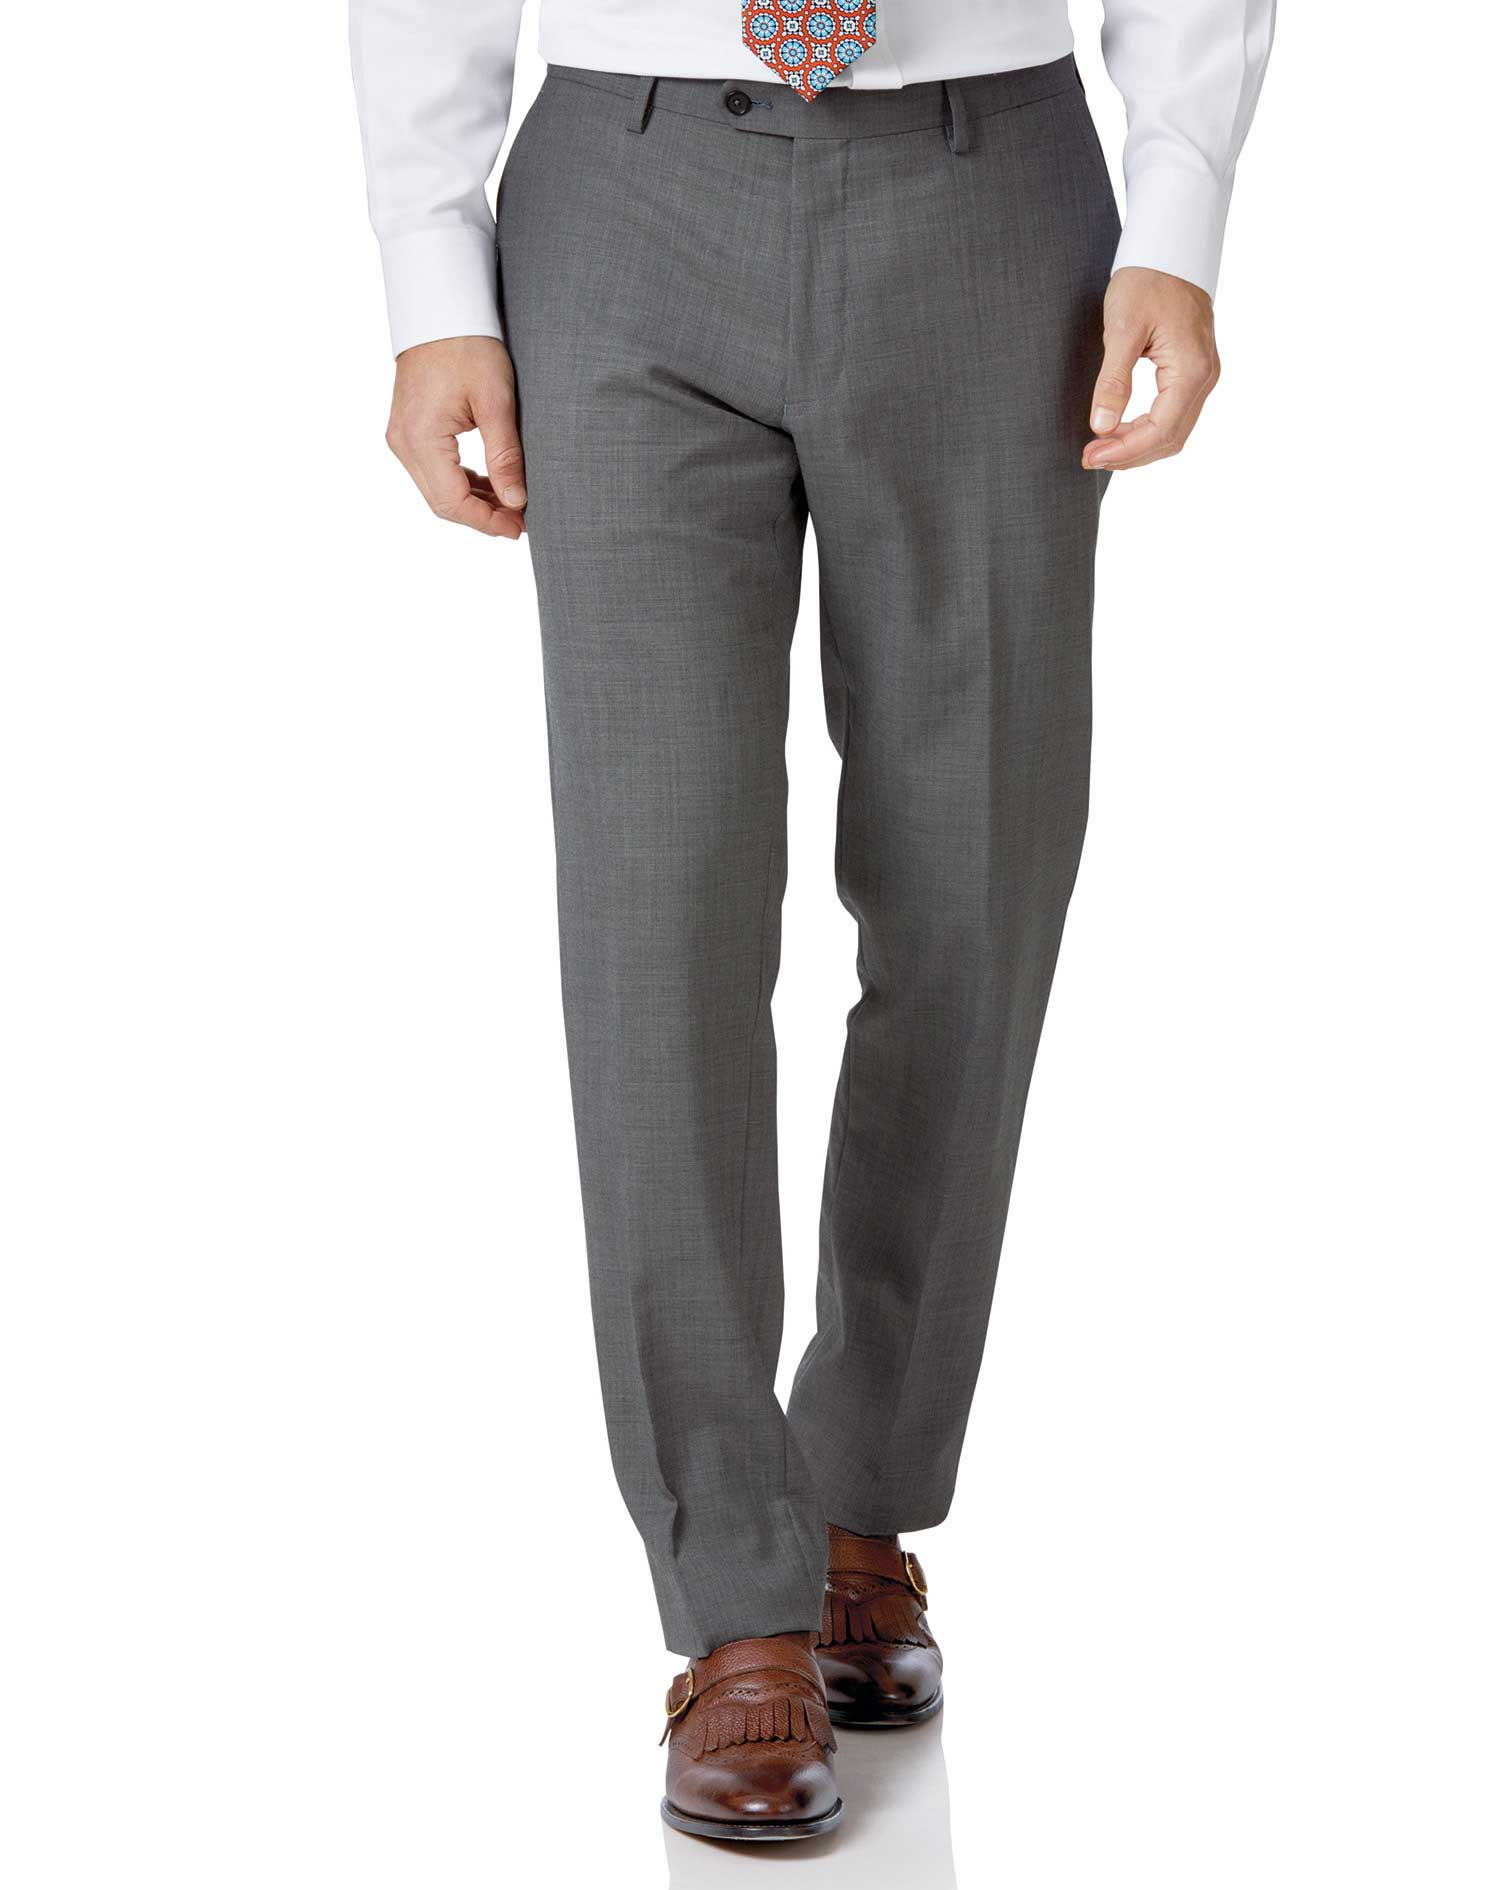 Light grey slim fit sharkskin travel suit trousers